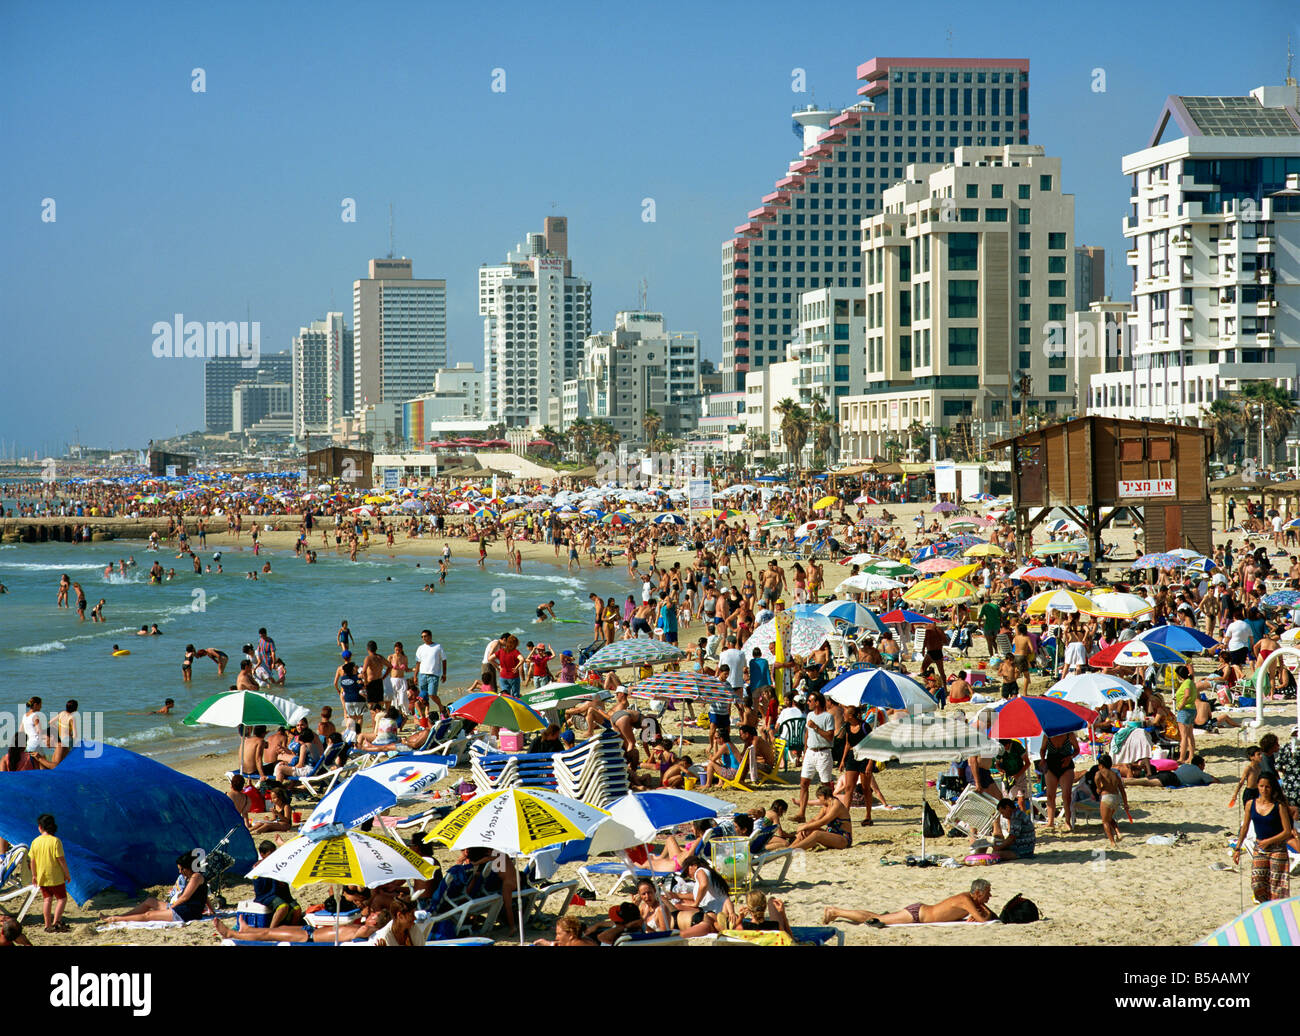 Crowds of tourists on the beach with tall seafront buildings, at Tel Aviv, Israel, Middle East - Stock Image